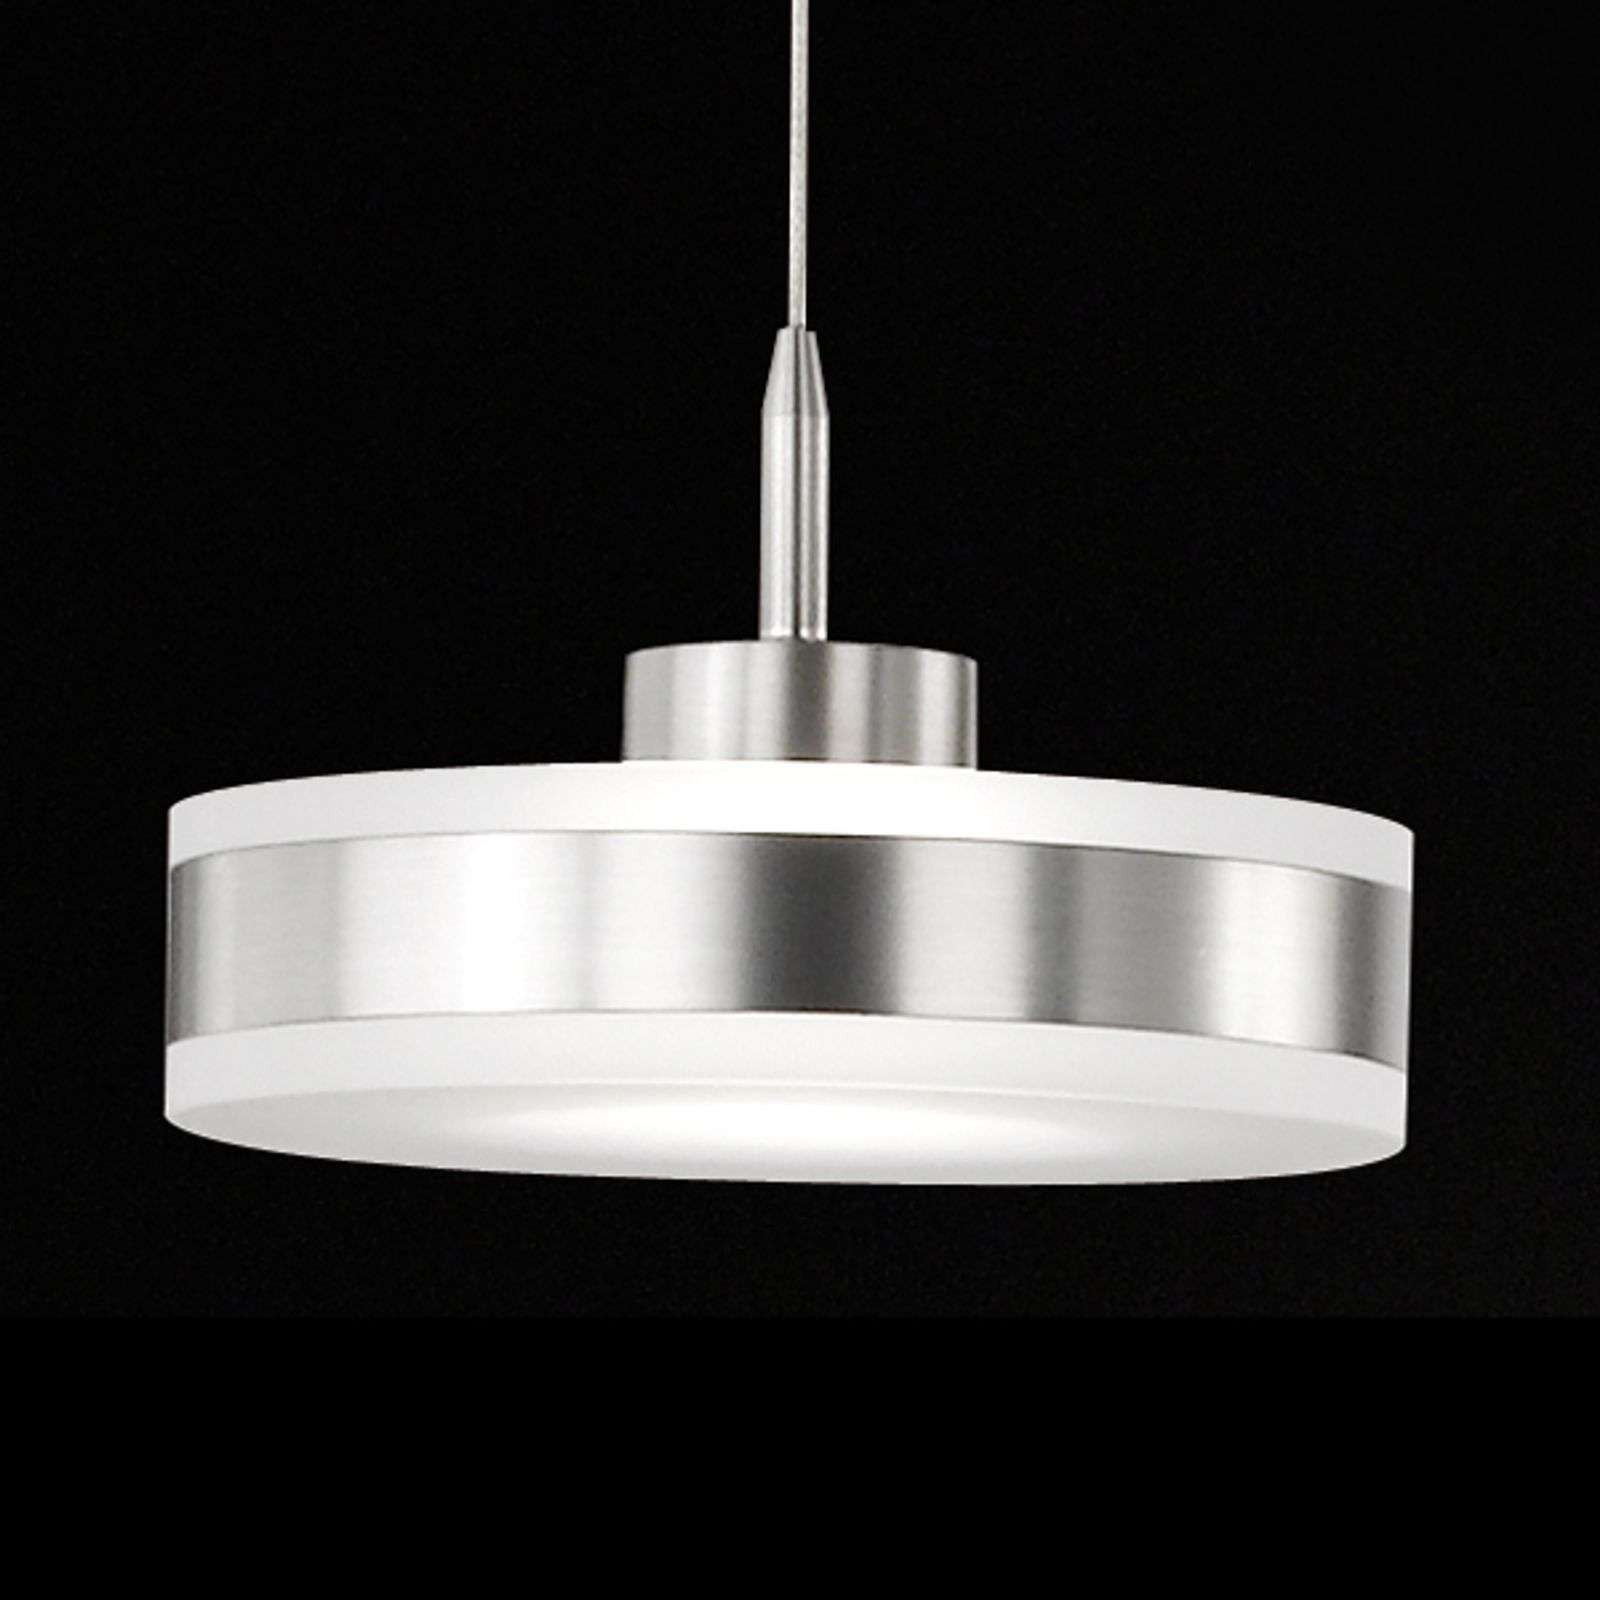 Ronde LED pendellamp Puk